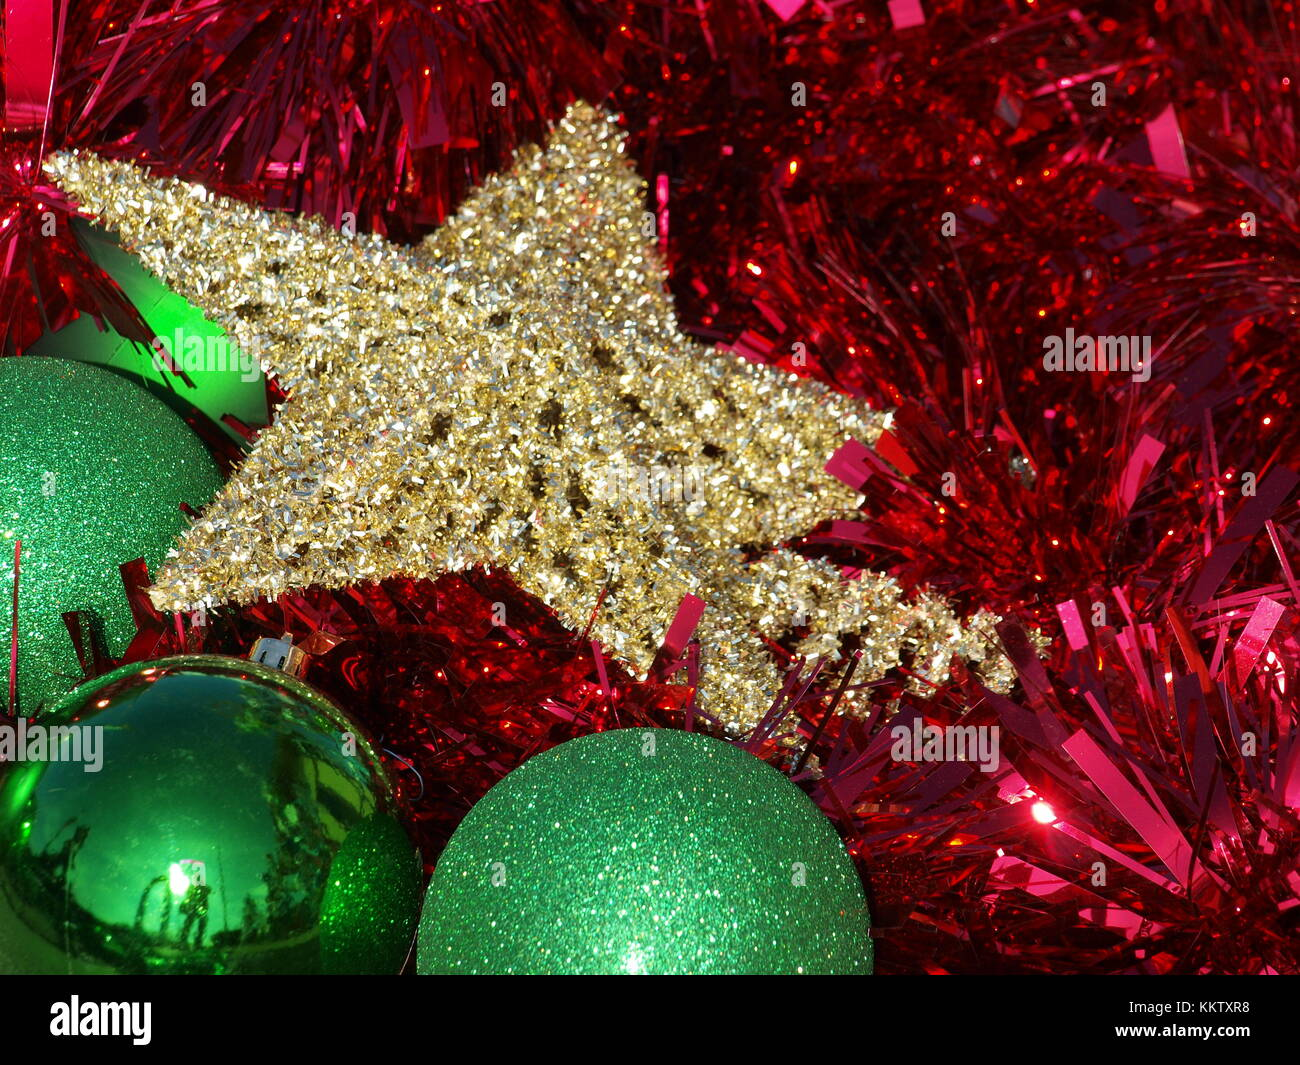 An Old Fashioned Christmas Delights Many Stock Photo: 167119660 - Alamy